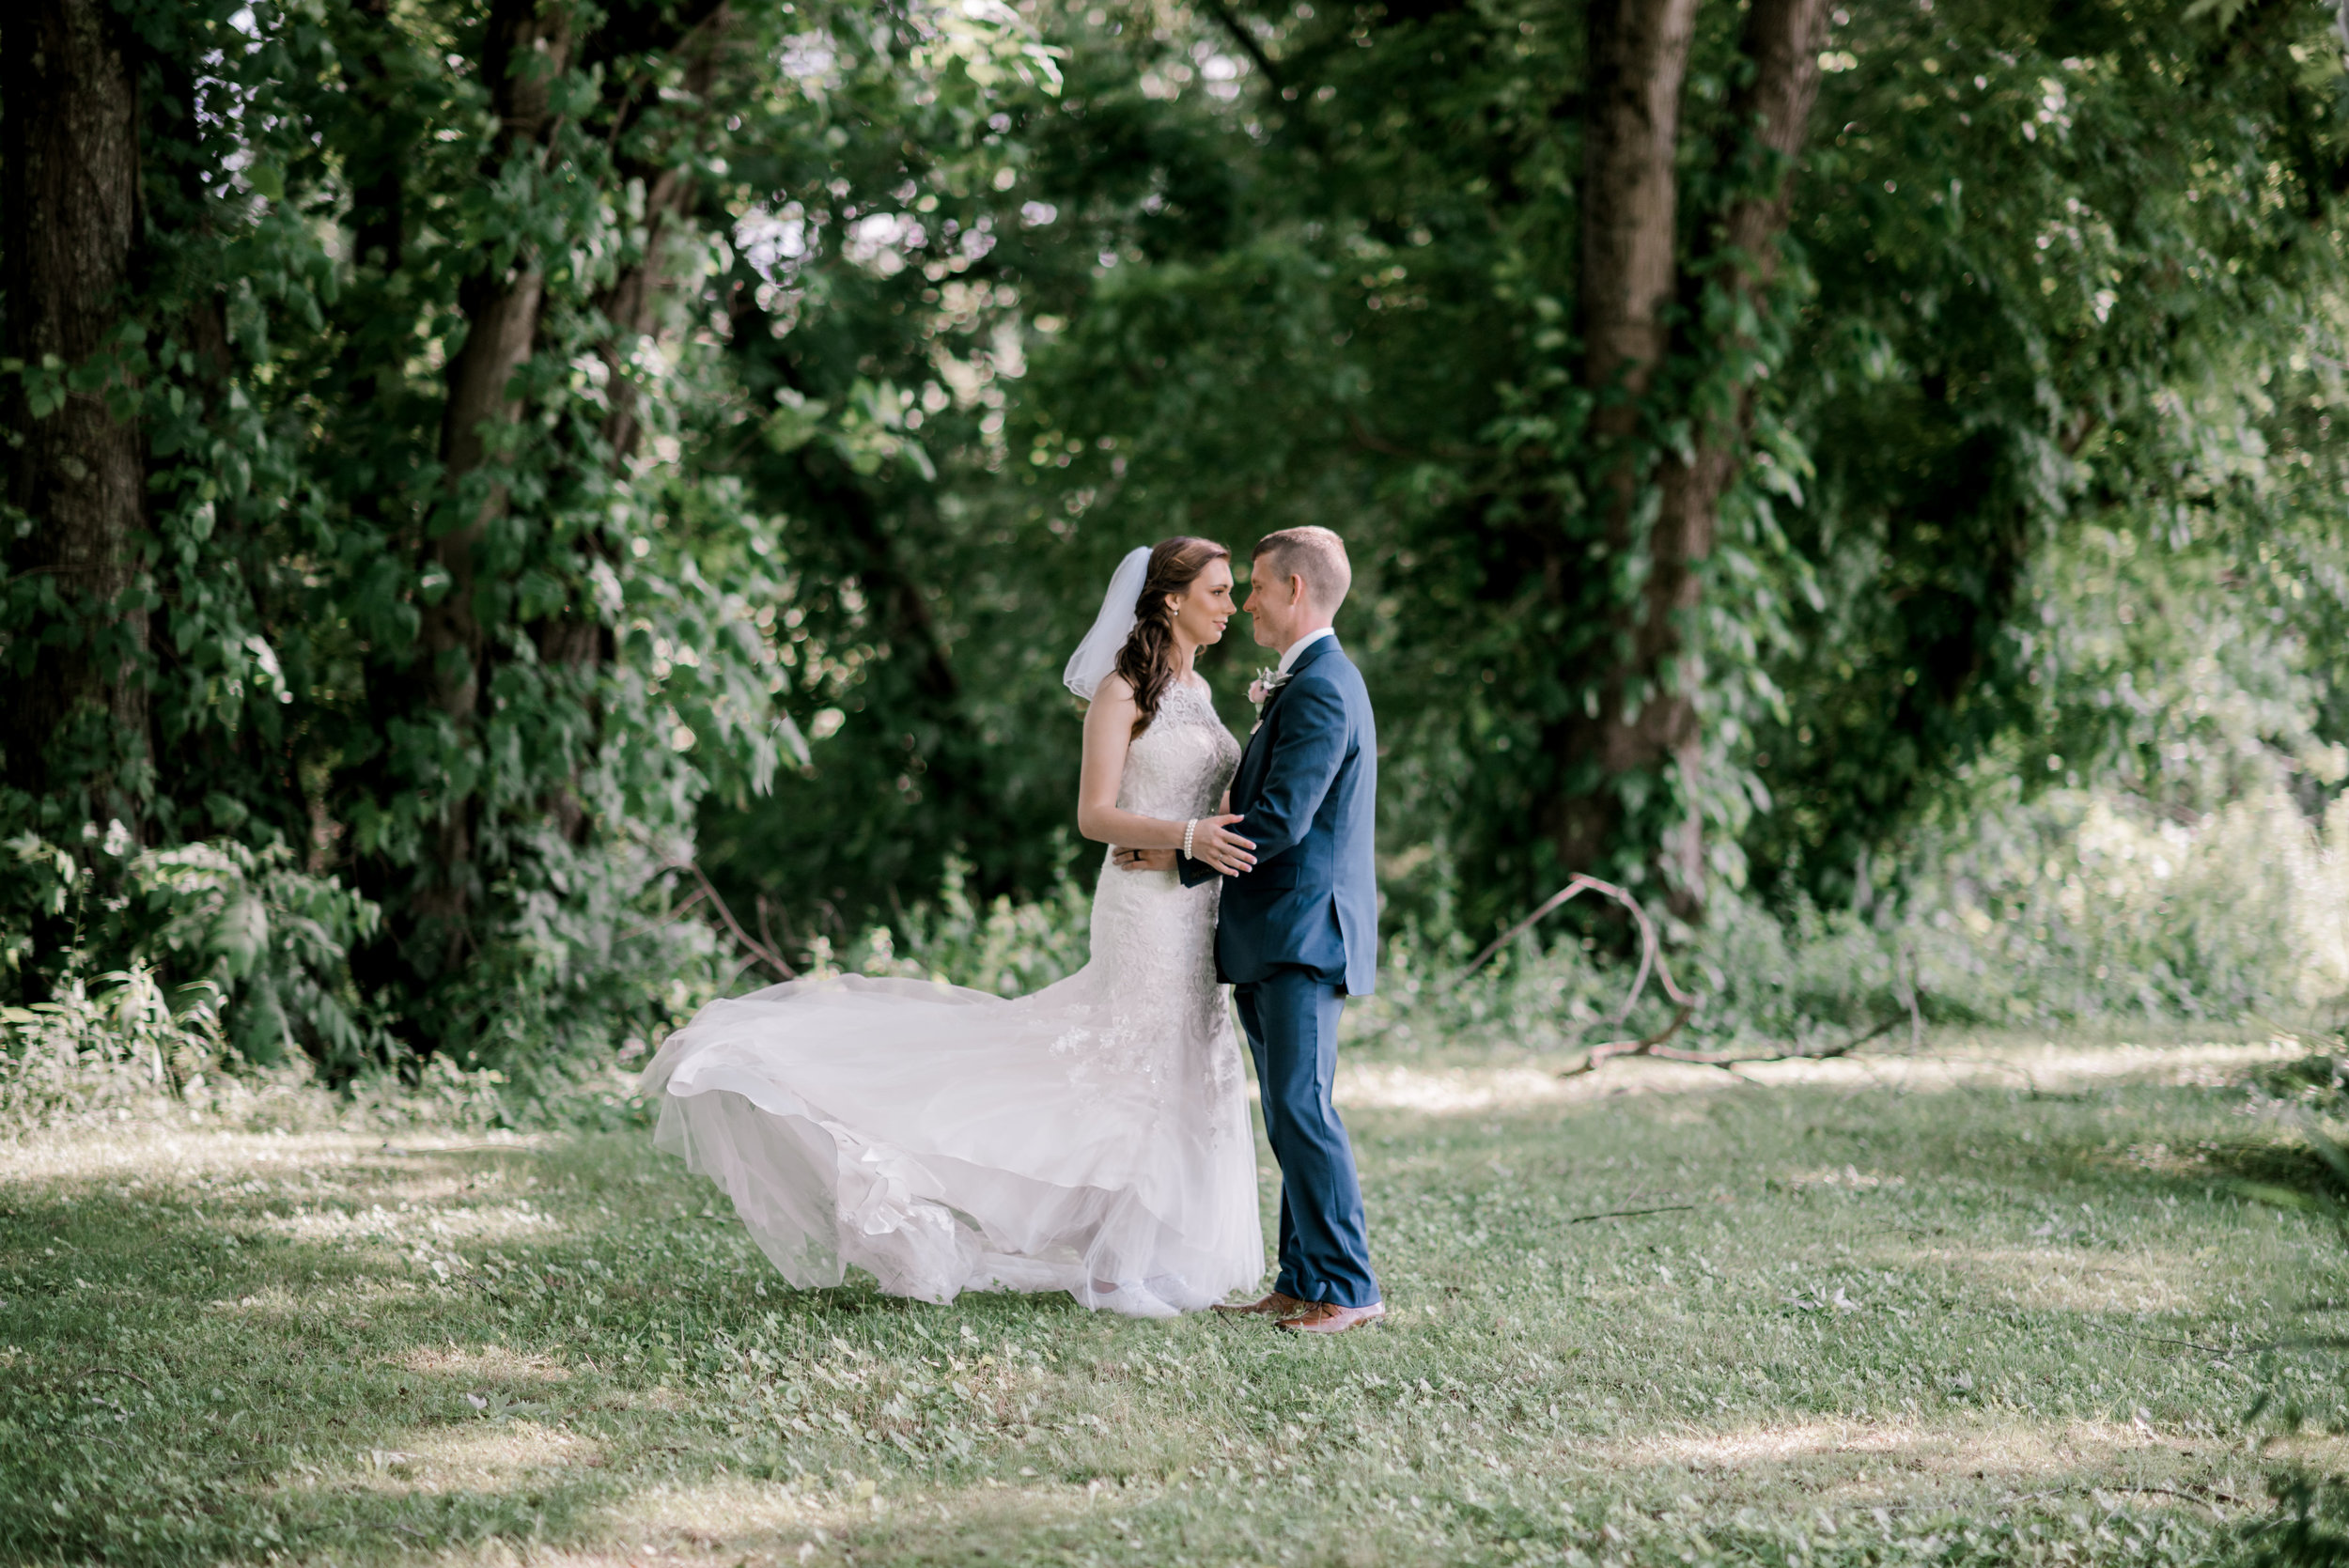 wedding-photographer-lexington-kentucky-bride-and-groom